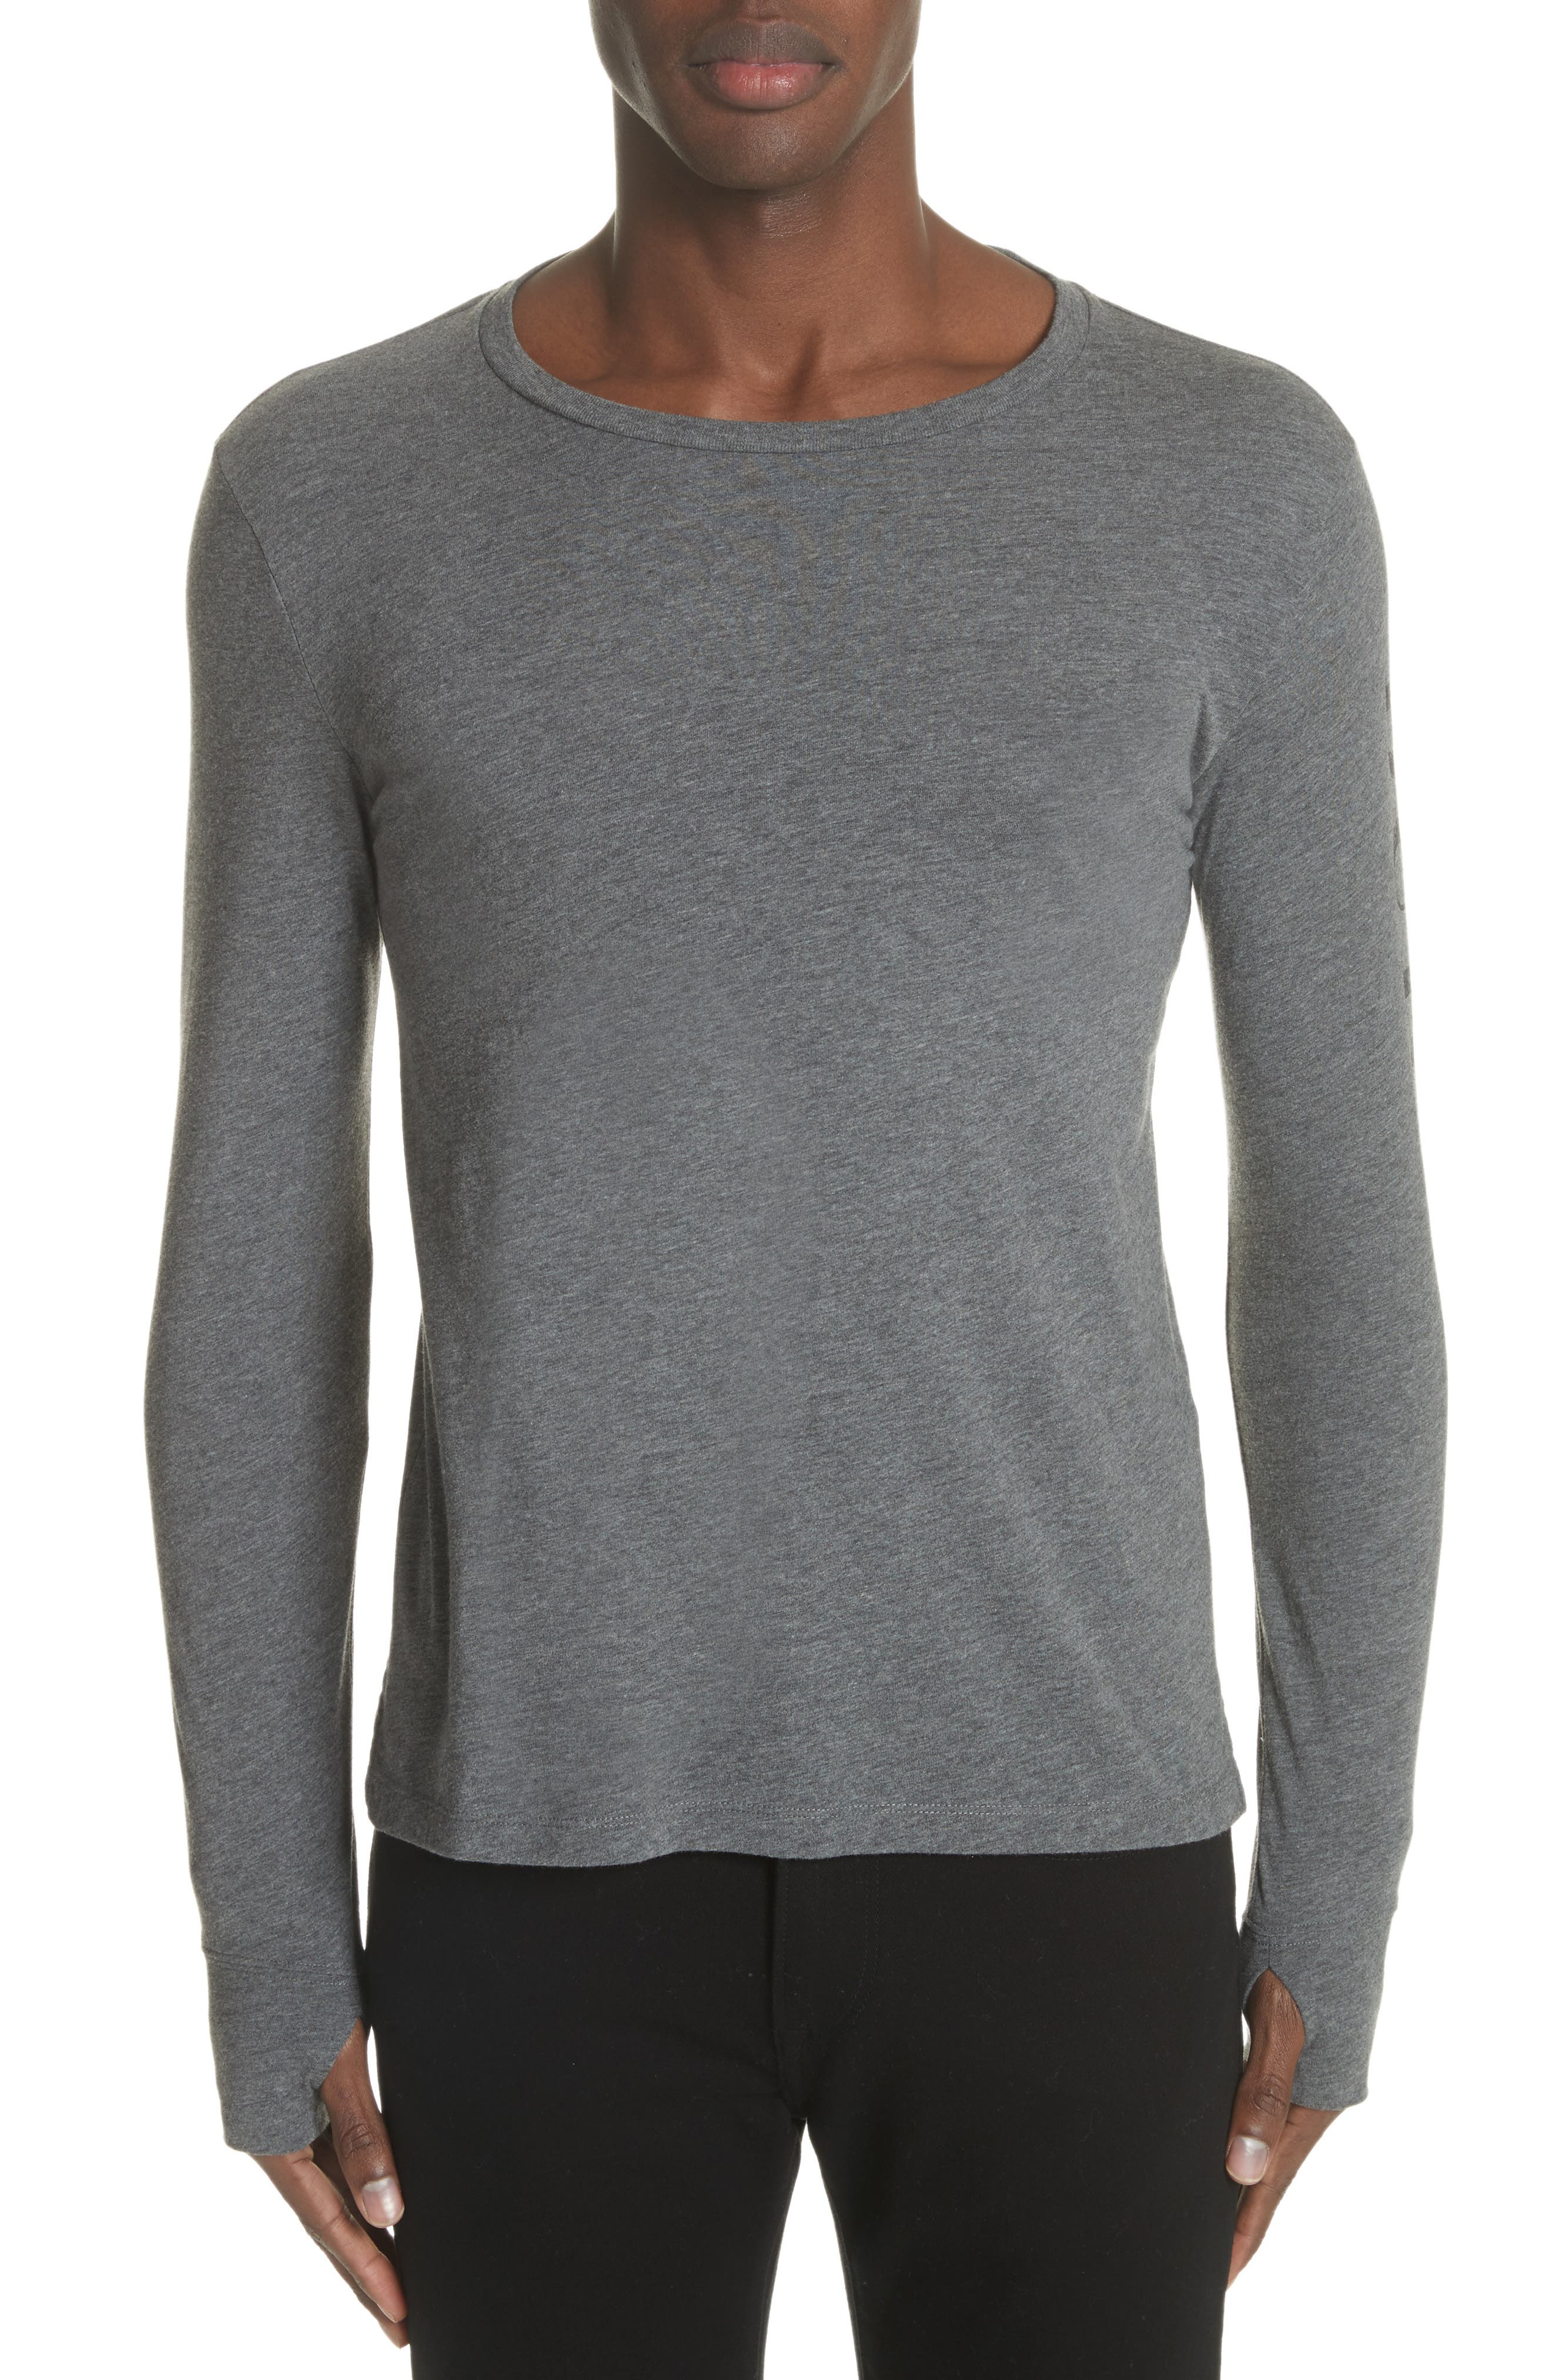 Marchston Regular Fit Crewneck Shirt,                             Main thumbnail 1, color,                             031